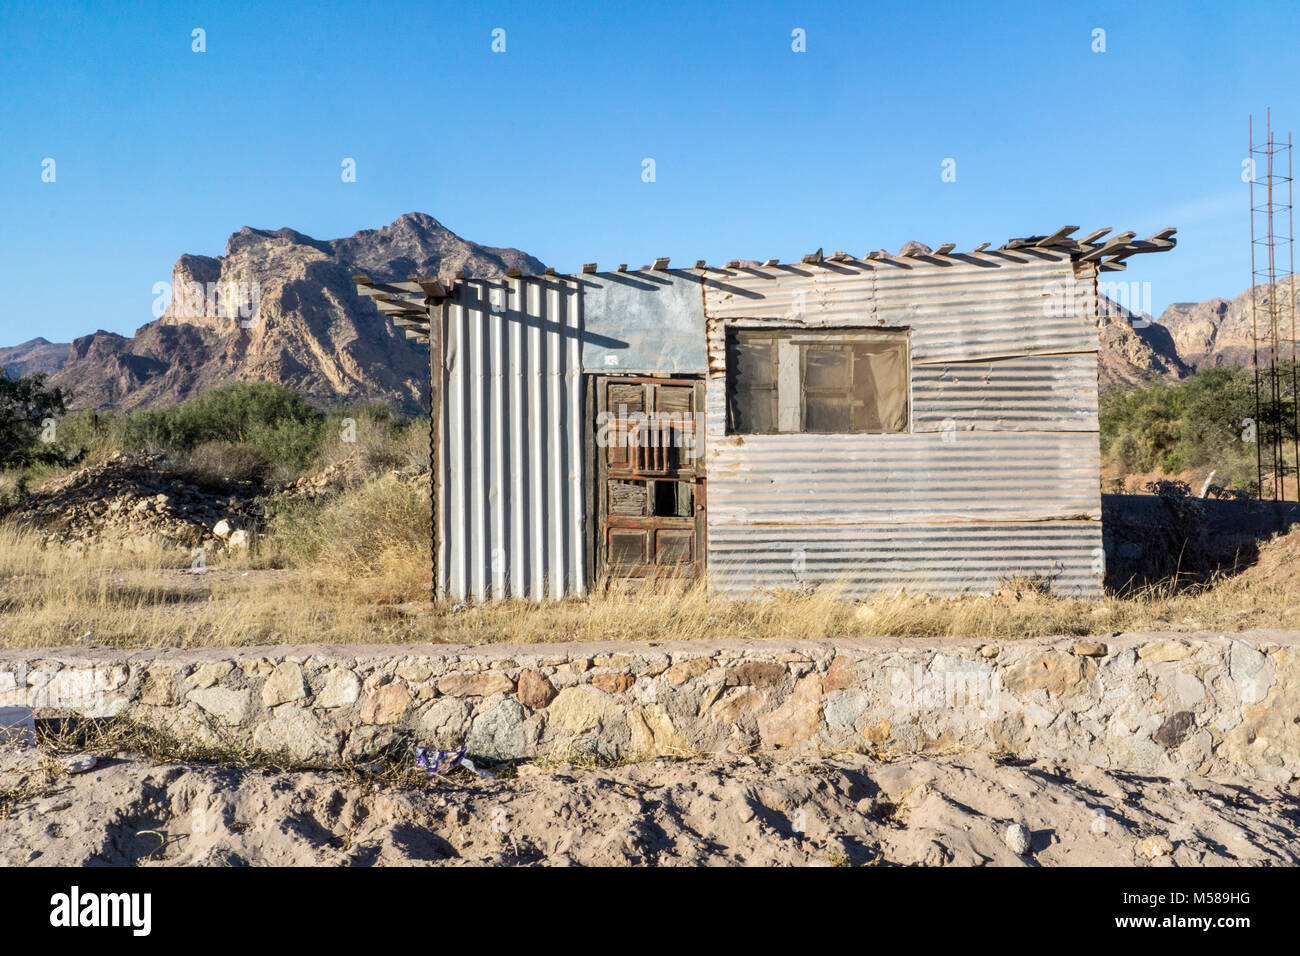 old fisherman's shack on Sonora desert coast near llaSan Carlos with eccentric patchwork of odd pieces galvanized - Stock Image